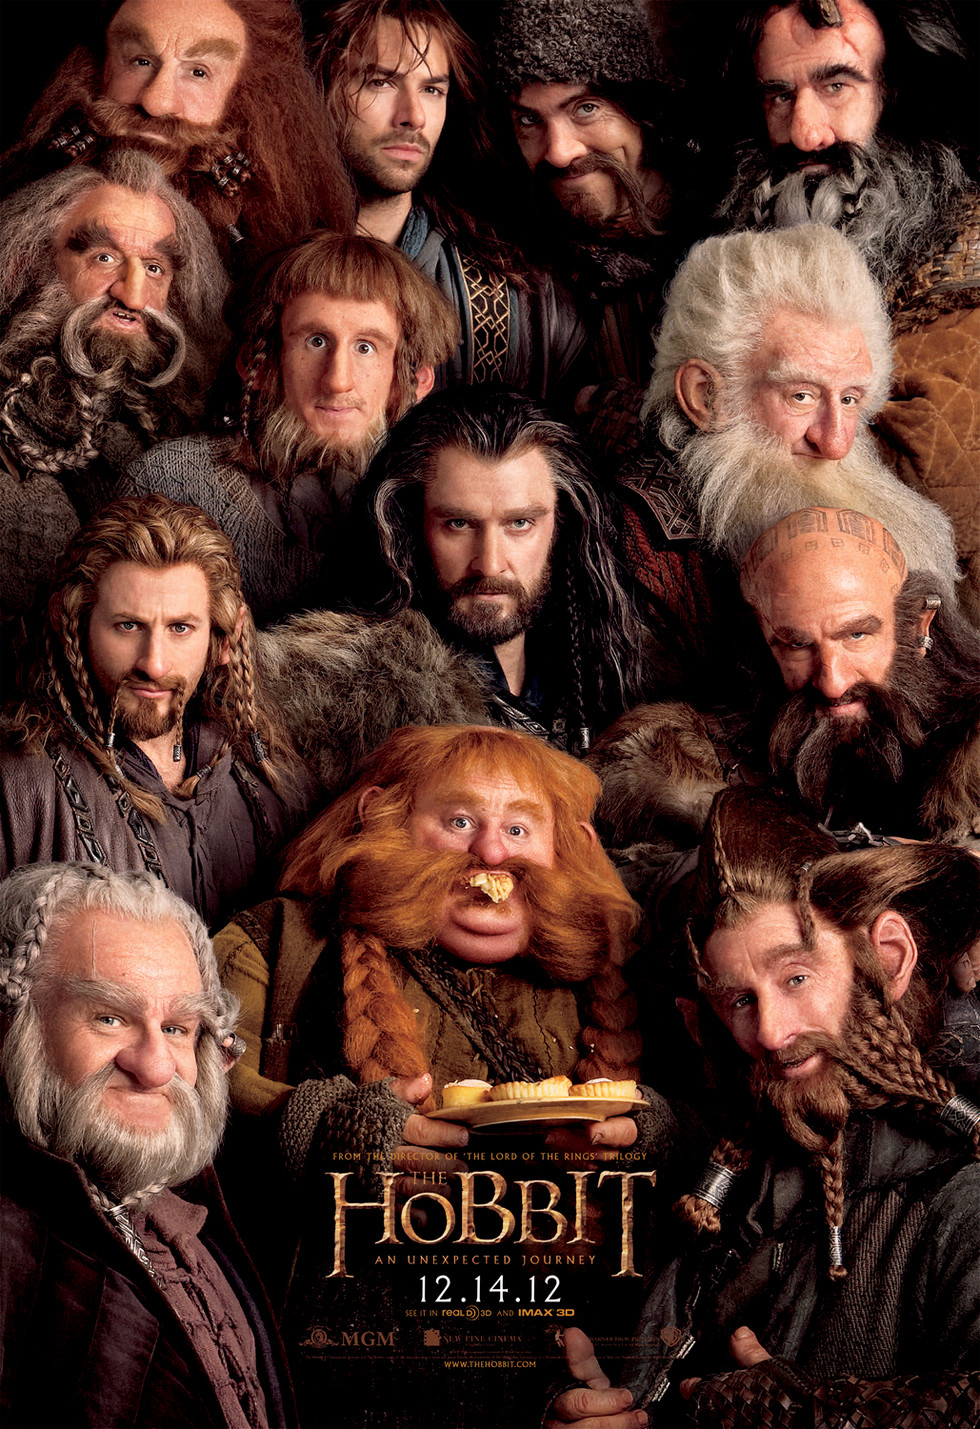 The Hobbit: An Unexpected Journey - Movie Poster #4 (Large)